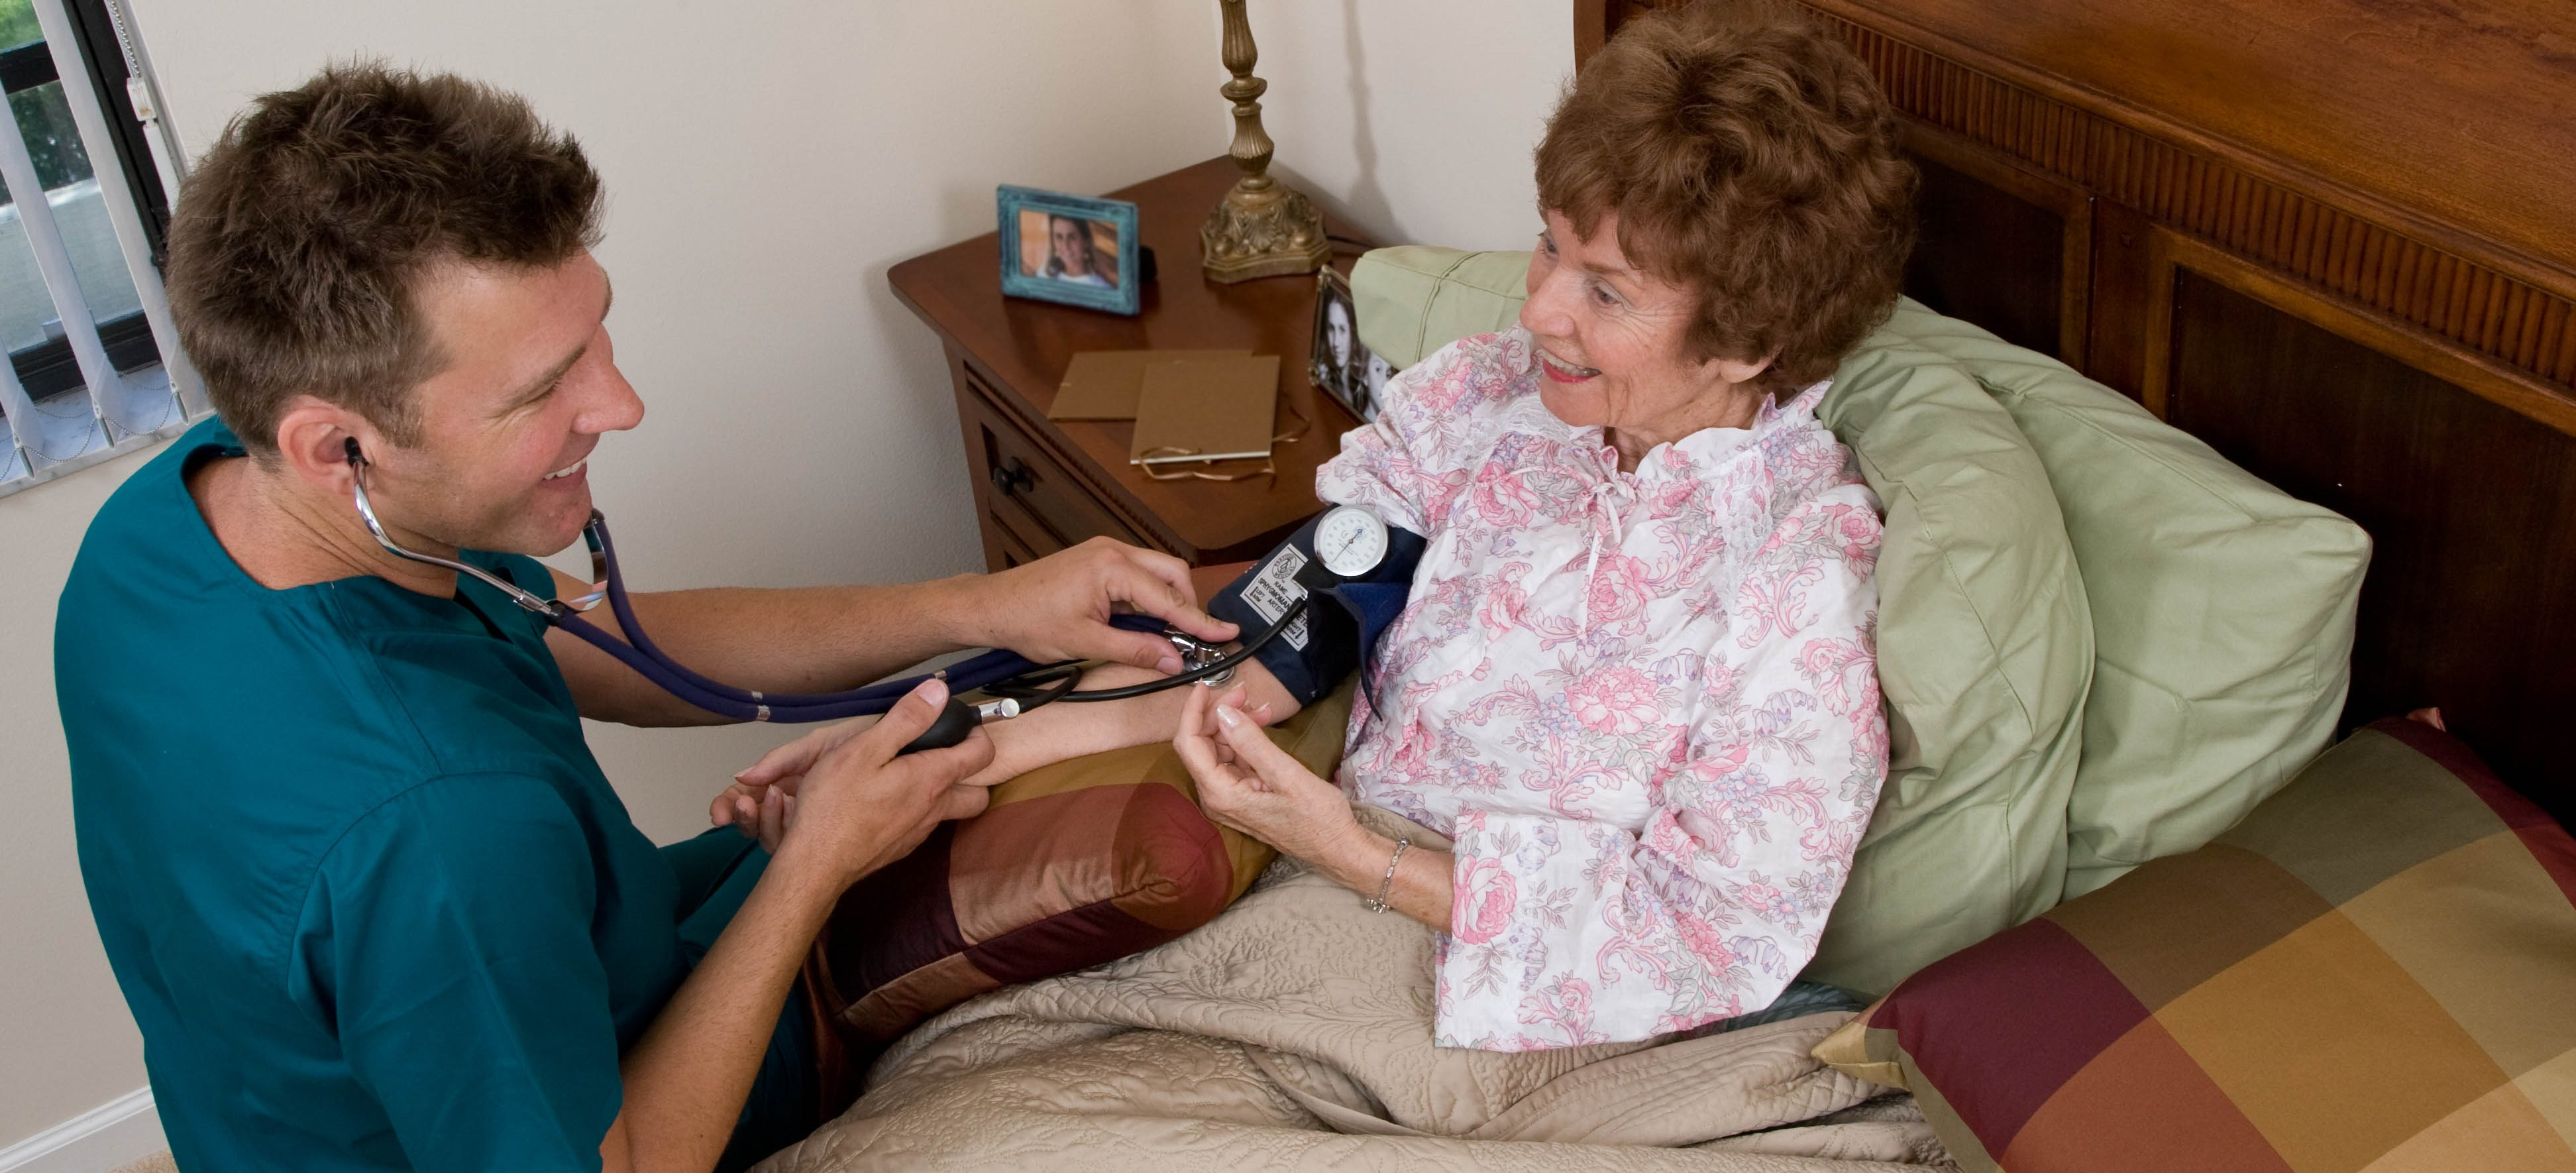 interim offers a wide variety of in home care services designed to improve quality of life